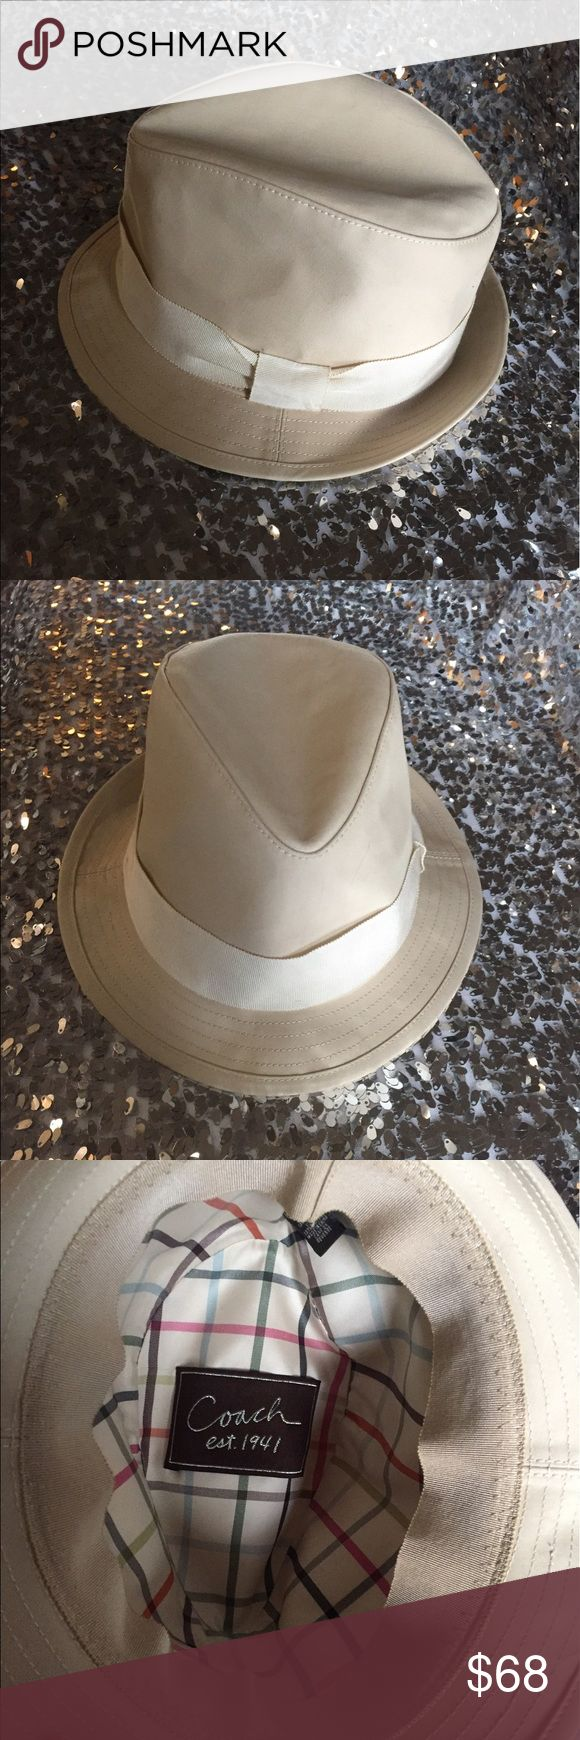 Coach hat 🎩 in great condition M/L size Beautiful Coach hat 🎩 in great condition M/L size Coach Accessories Hats